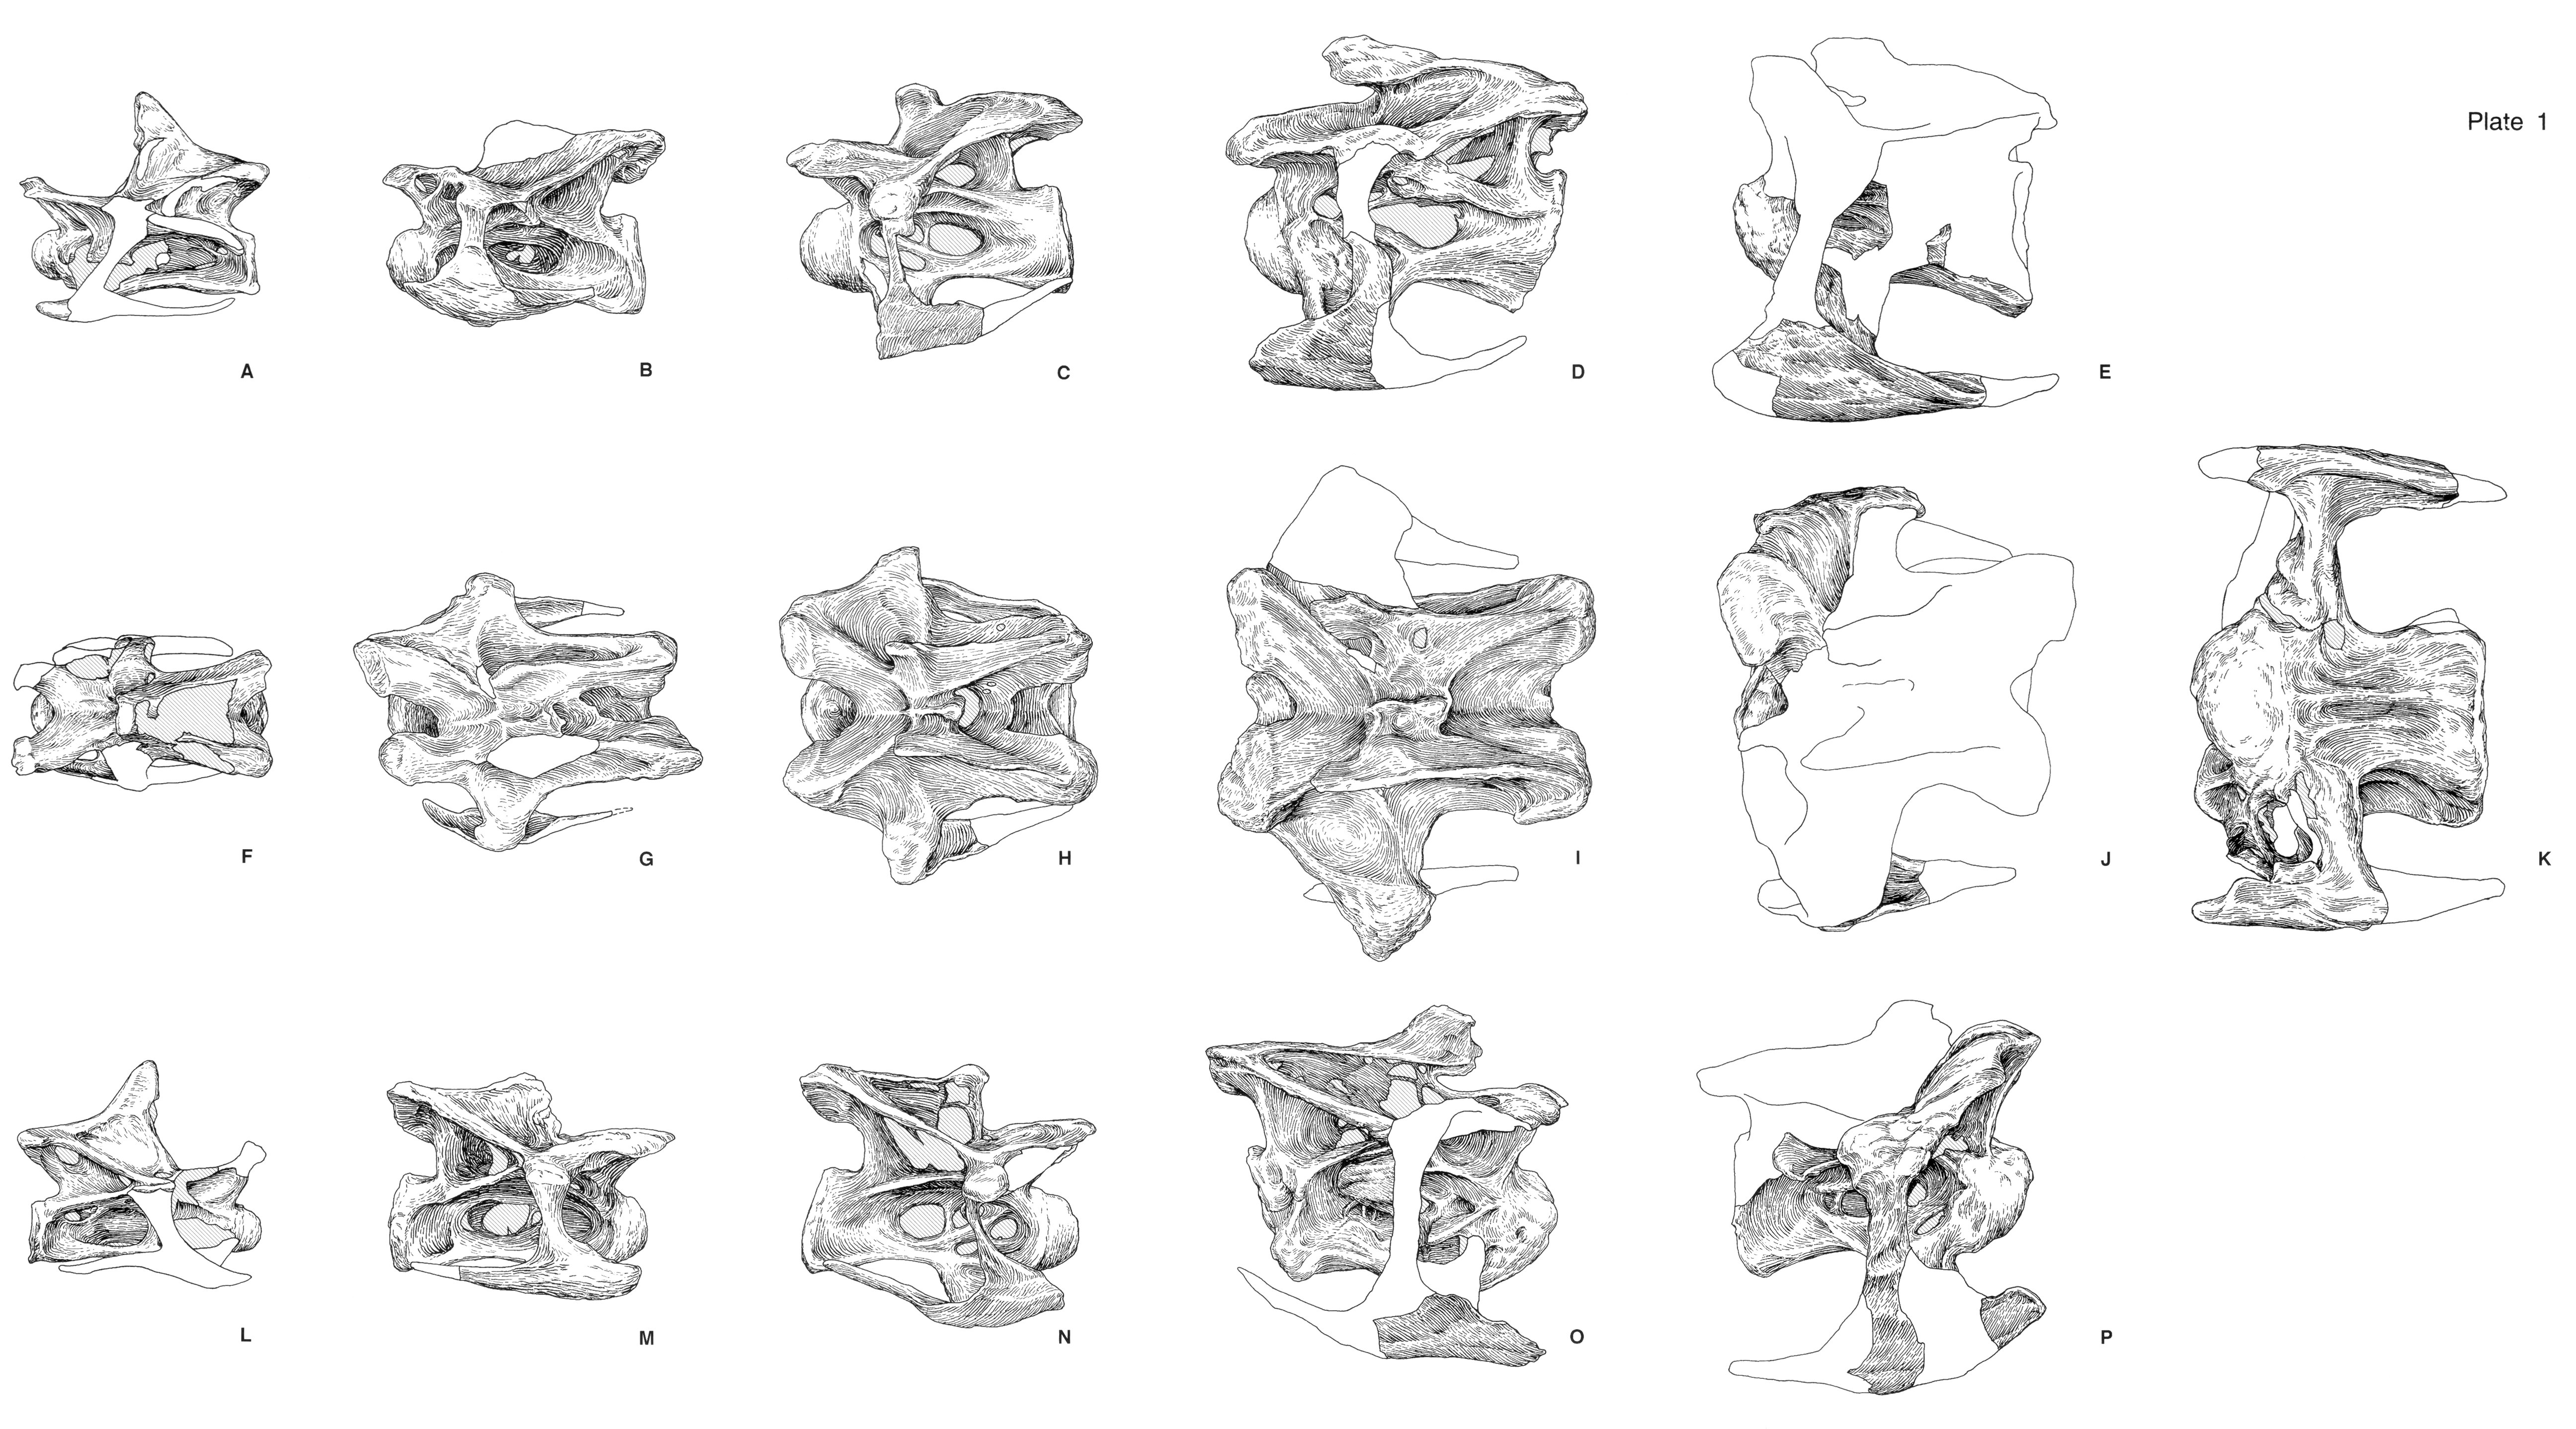 Here Are Those Dorsal View Images Of Apatosaurus Cervicals You